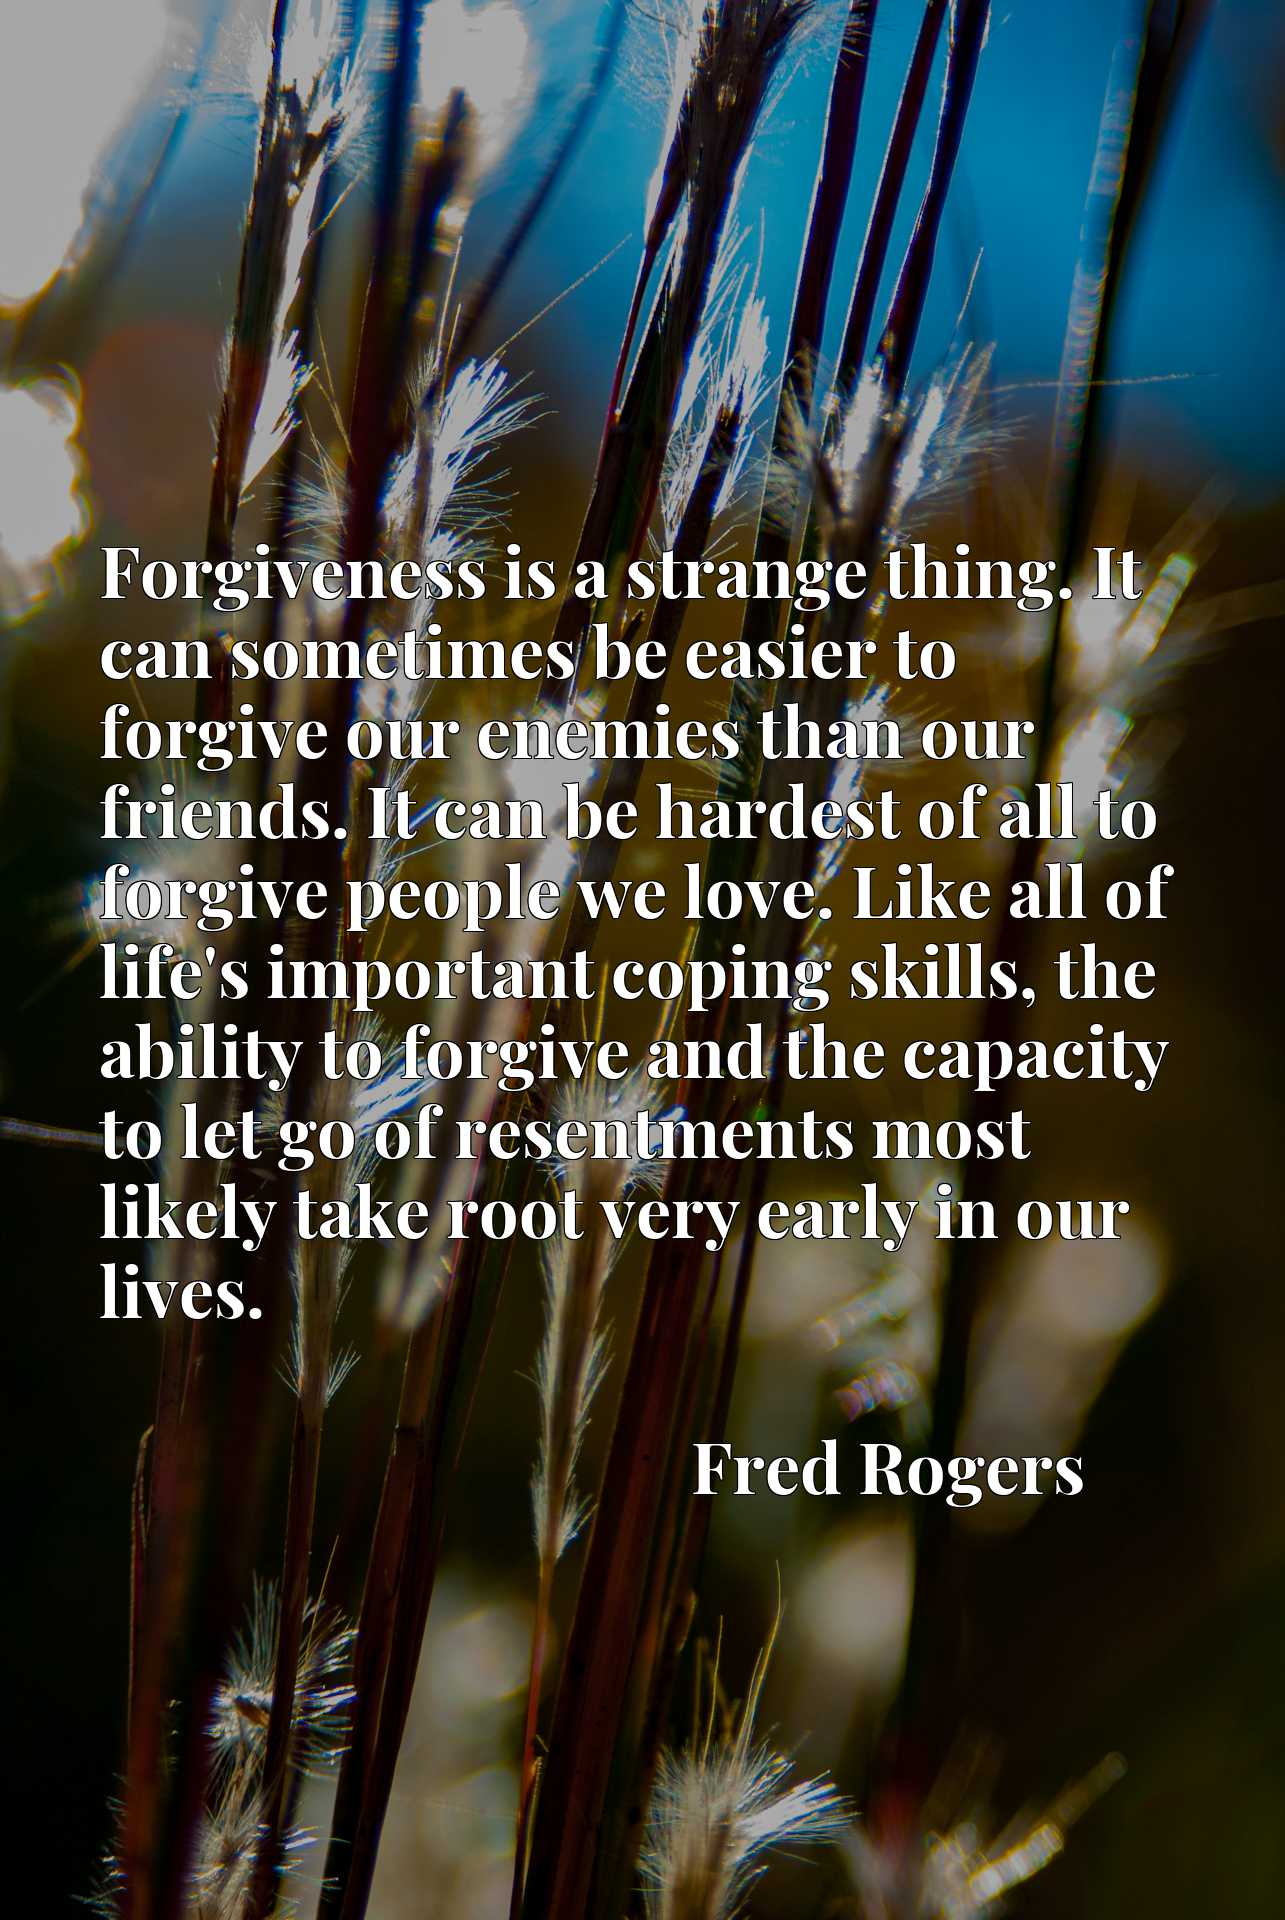 Forgiveness is a strange thing. It can sometimes be easier to forgive our enemies than our friends. It can be hardest of all to forgive people we love. Like all of life's important coping skills, the ability to forgive and the capacity to let go of resentments most likely take root very early in our lives.